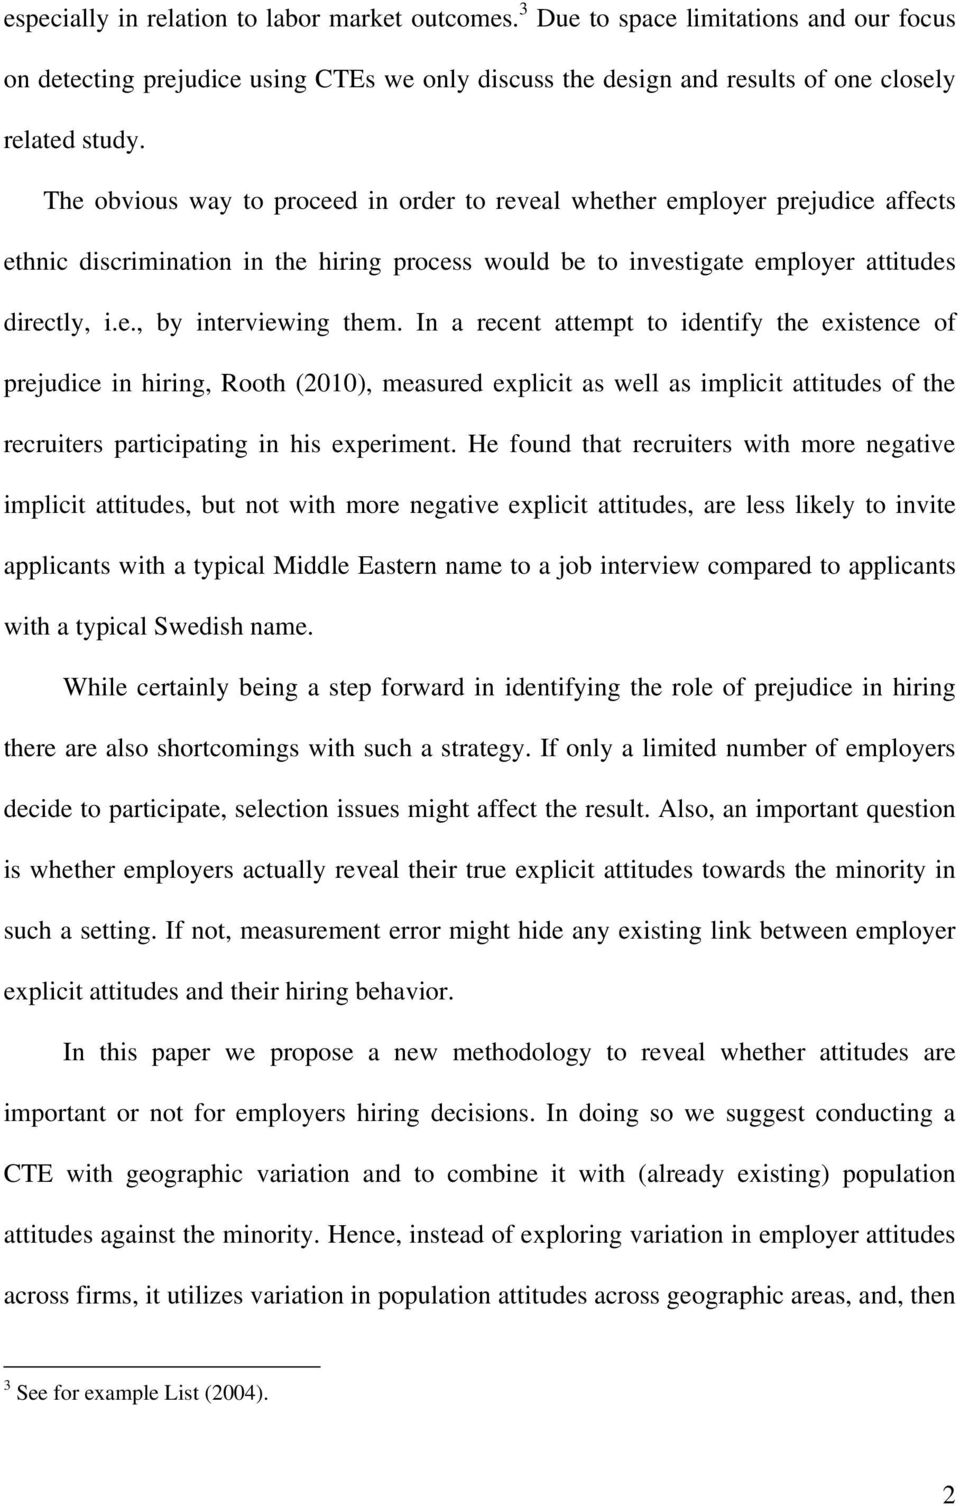 In a recent attempt to identify the existence of prejudice in hiring, Rooth (2010), measured explicit as well as implicit attitudes of the recruiters participating in his experiment.